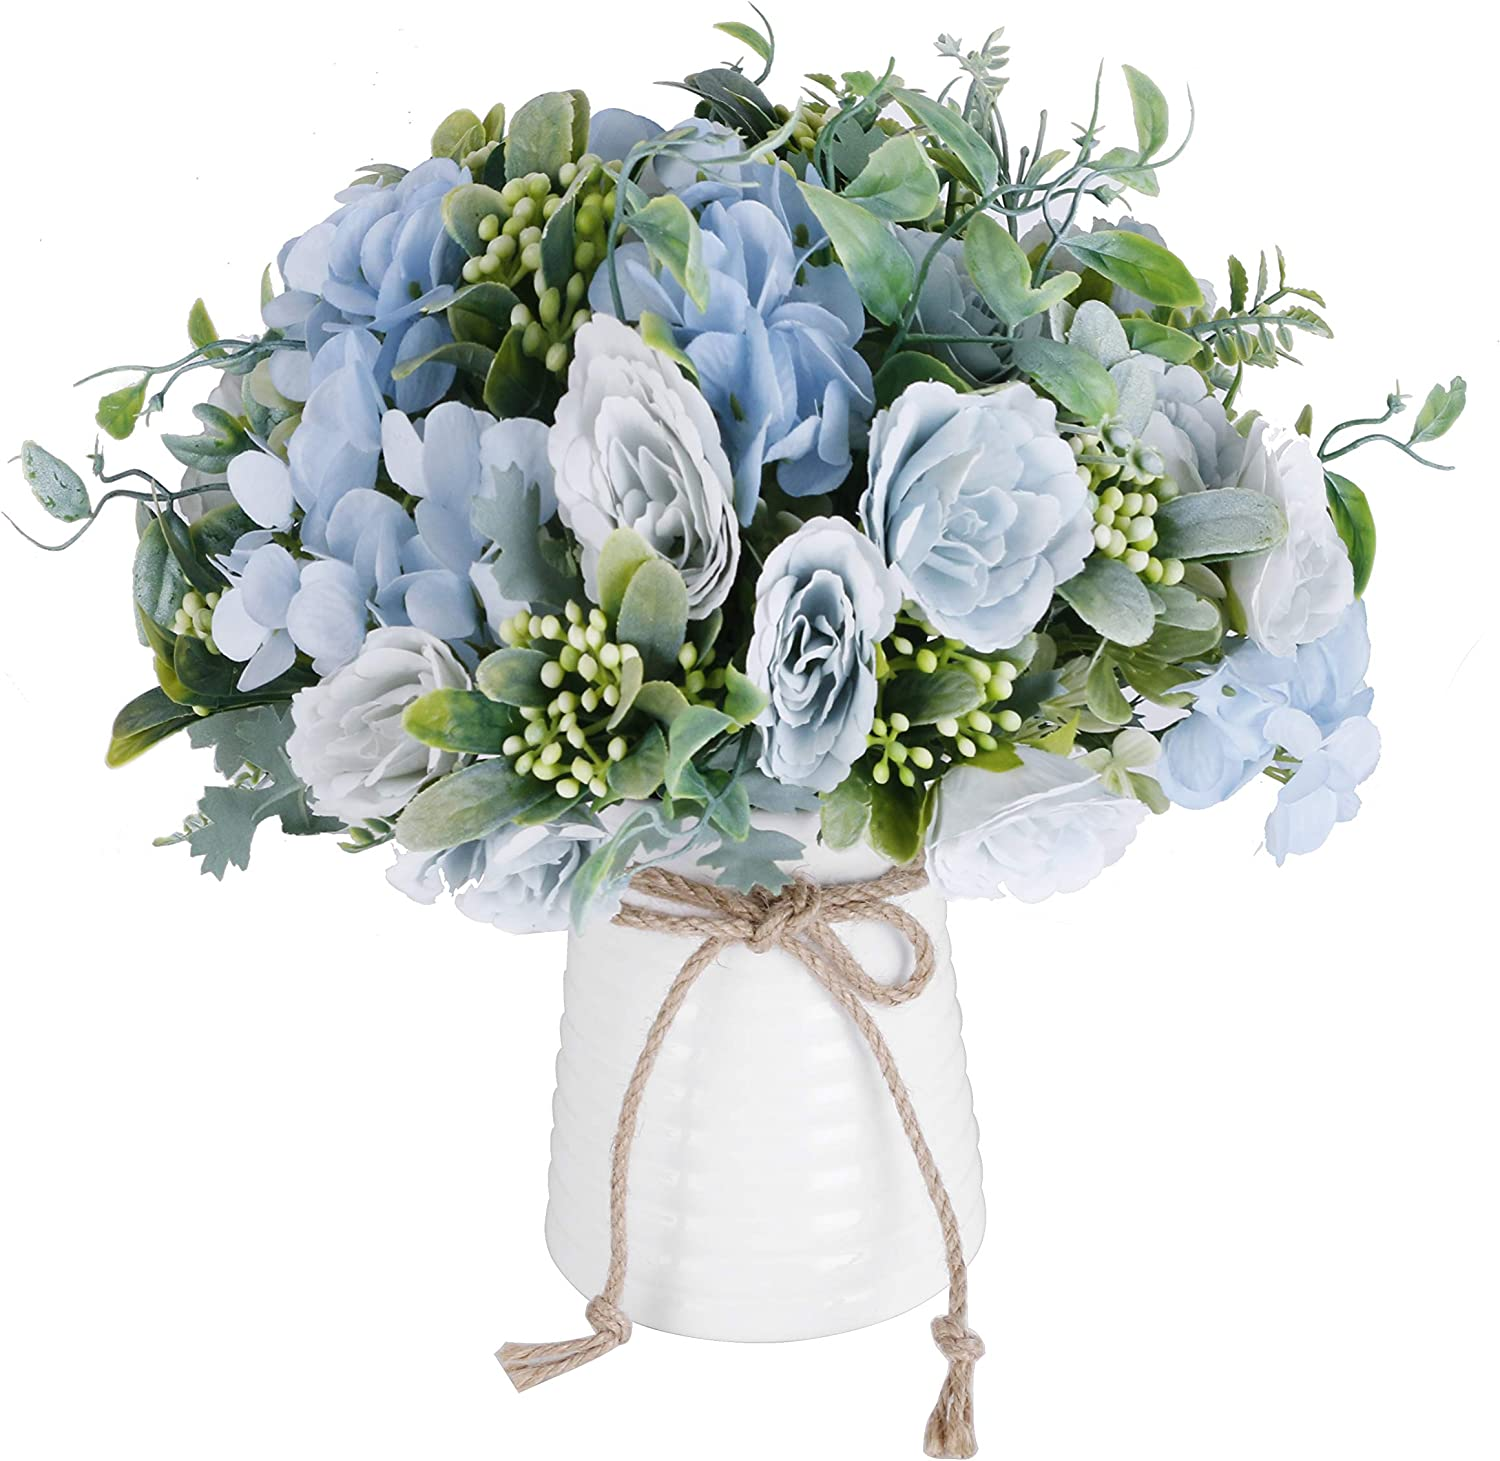 Naweida Artificial Flowers With Vase Faux Flower Arrangements For Table Decor Table Centerpieces For Dining Room Blue Home Kitchen